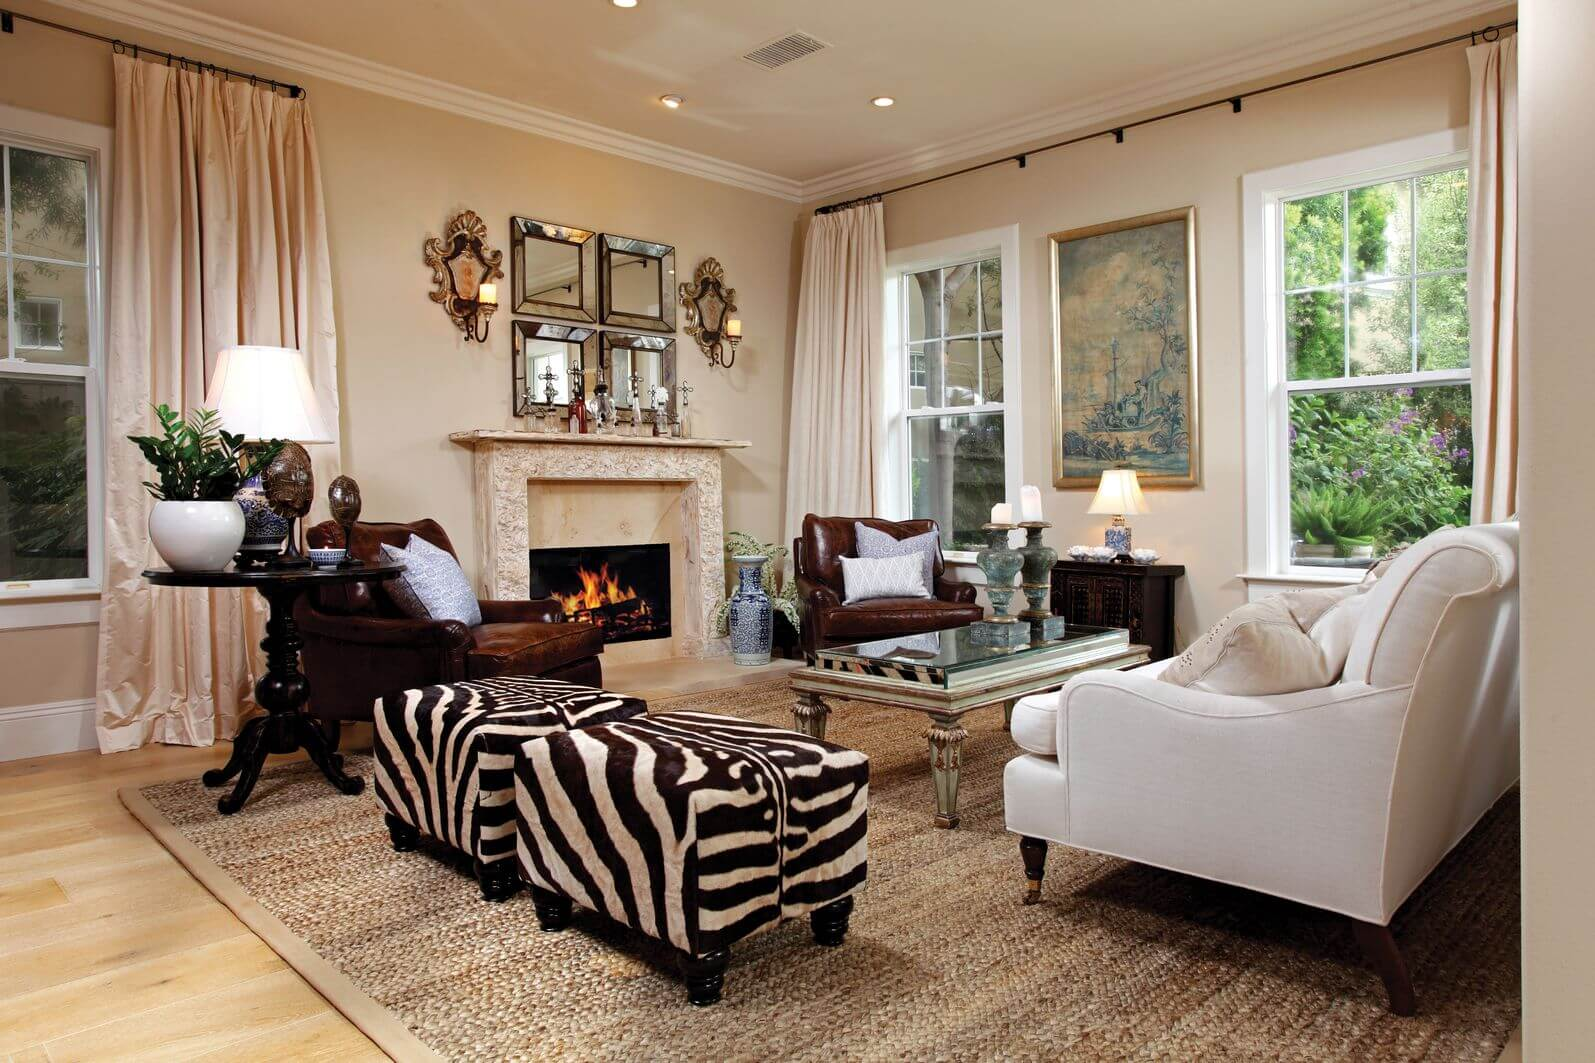 Larger Formal Living Room Incorporating Zebra Print With Two Identical Zebra  Print Ottomans Off To The